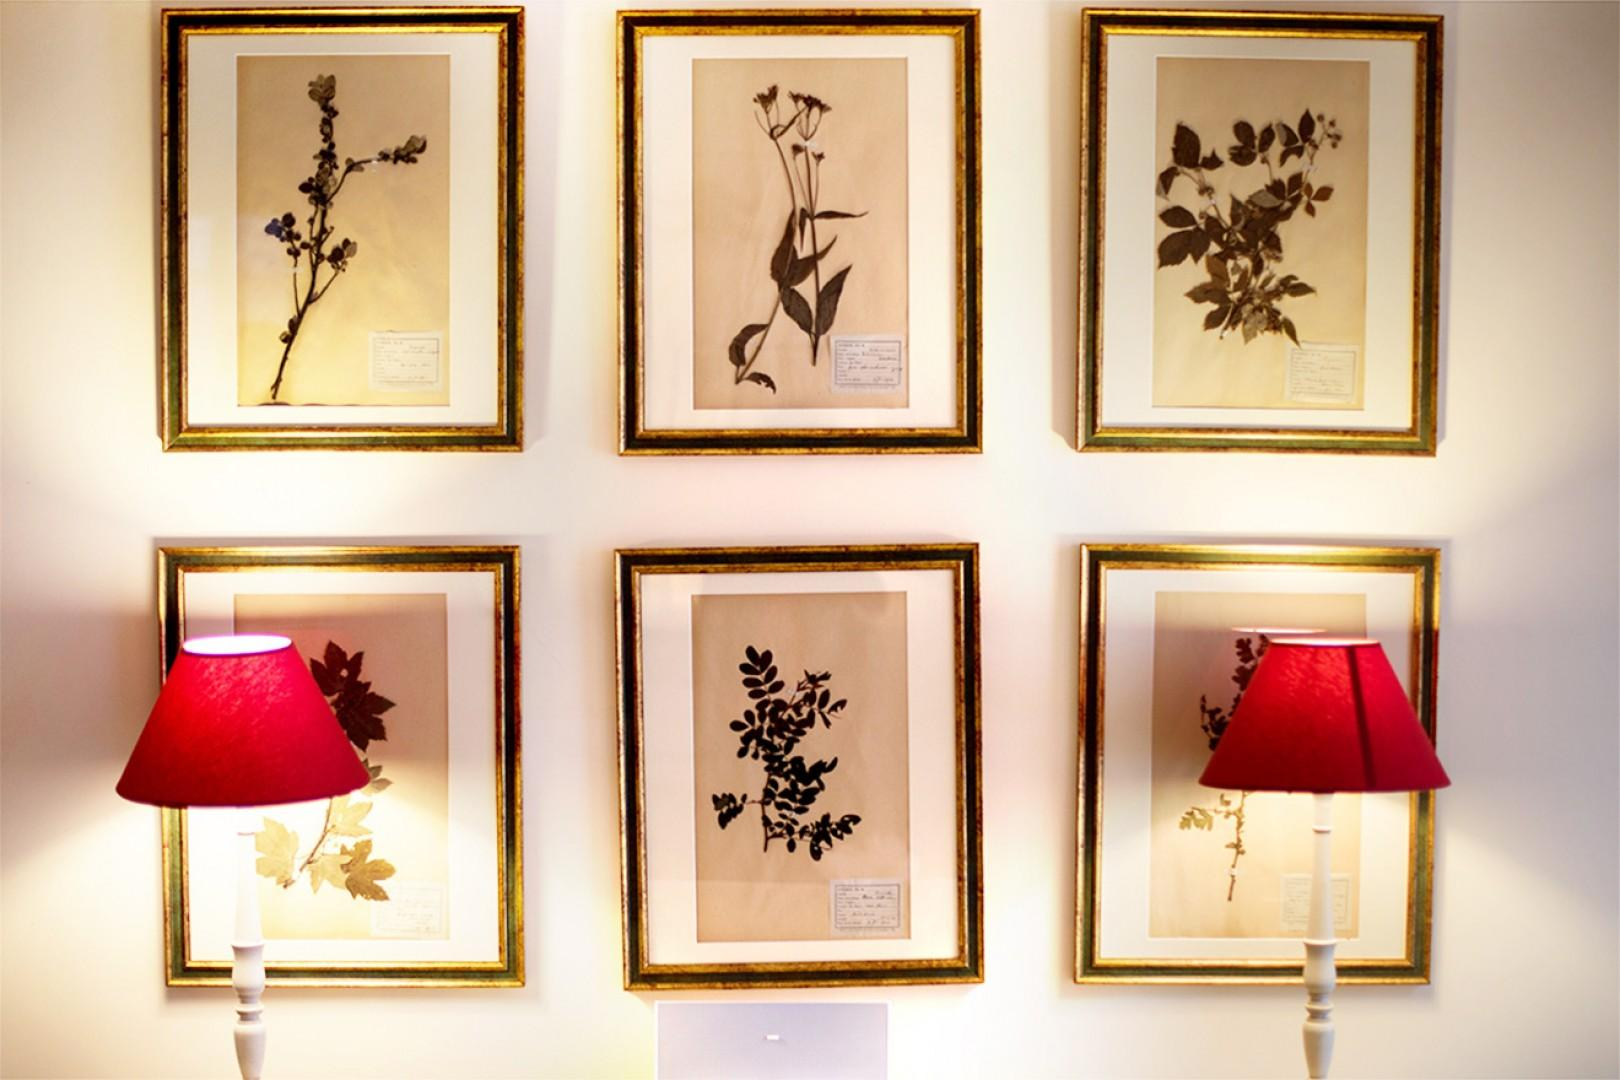 Decorative touches add an elegant flair to the apartment.